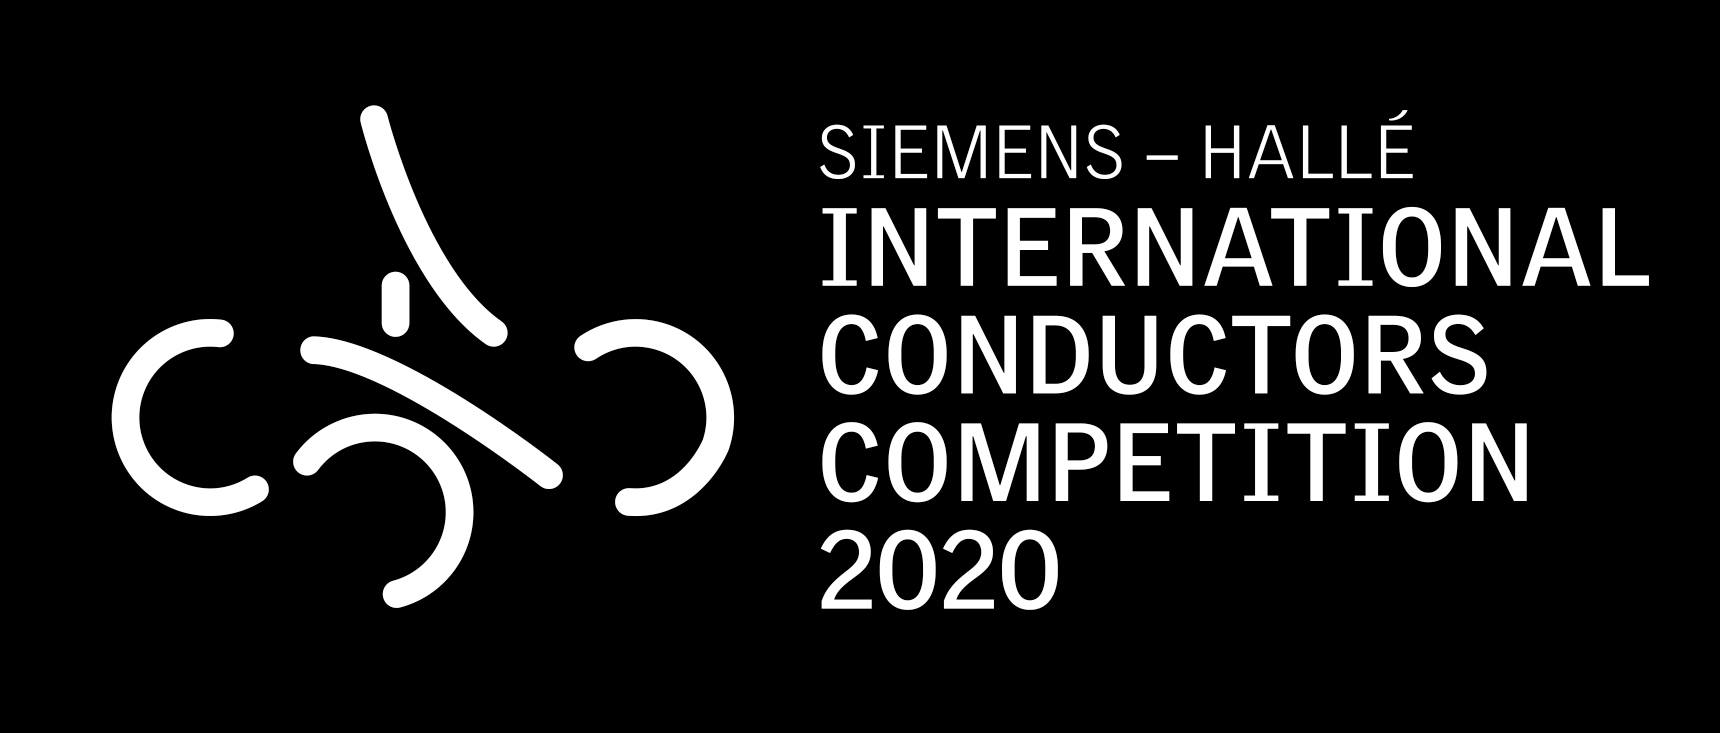 Siemens Hallé International Conducting Competition 2020